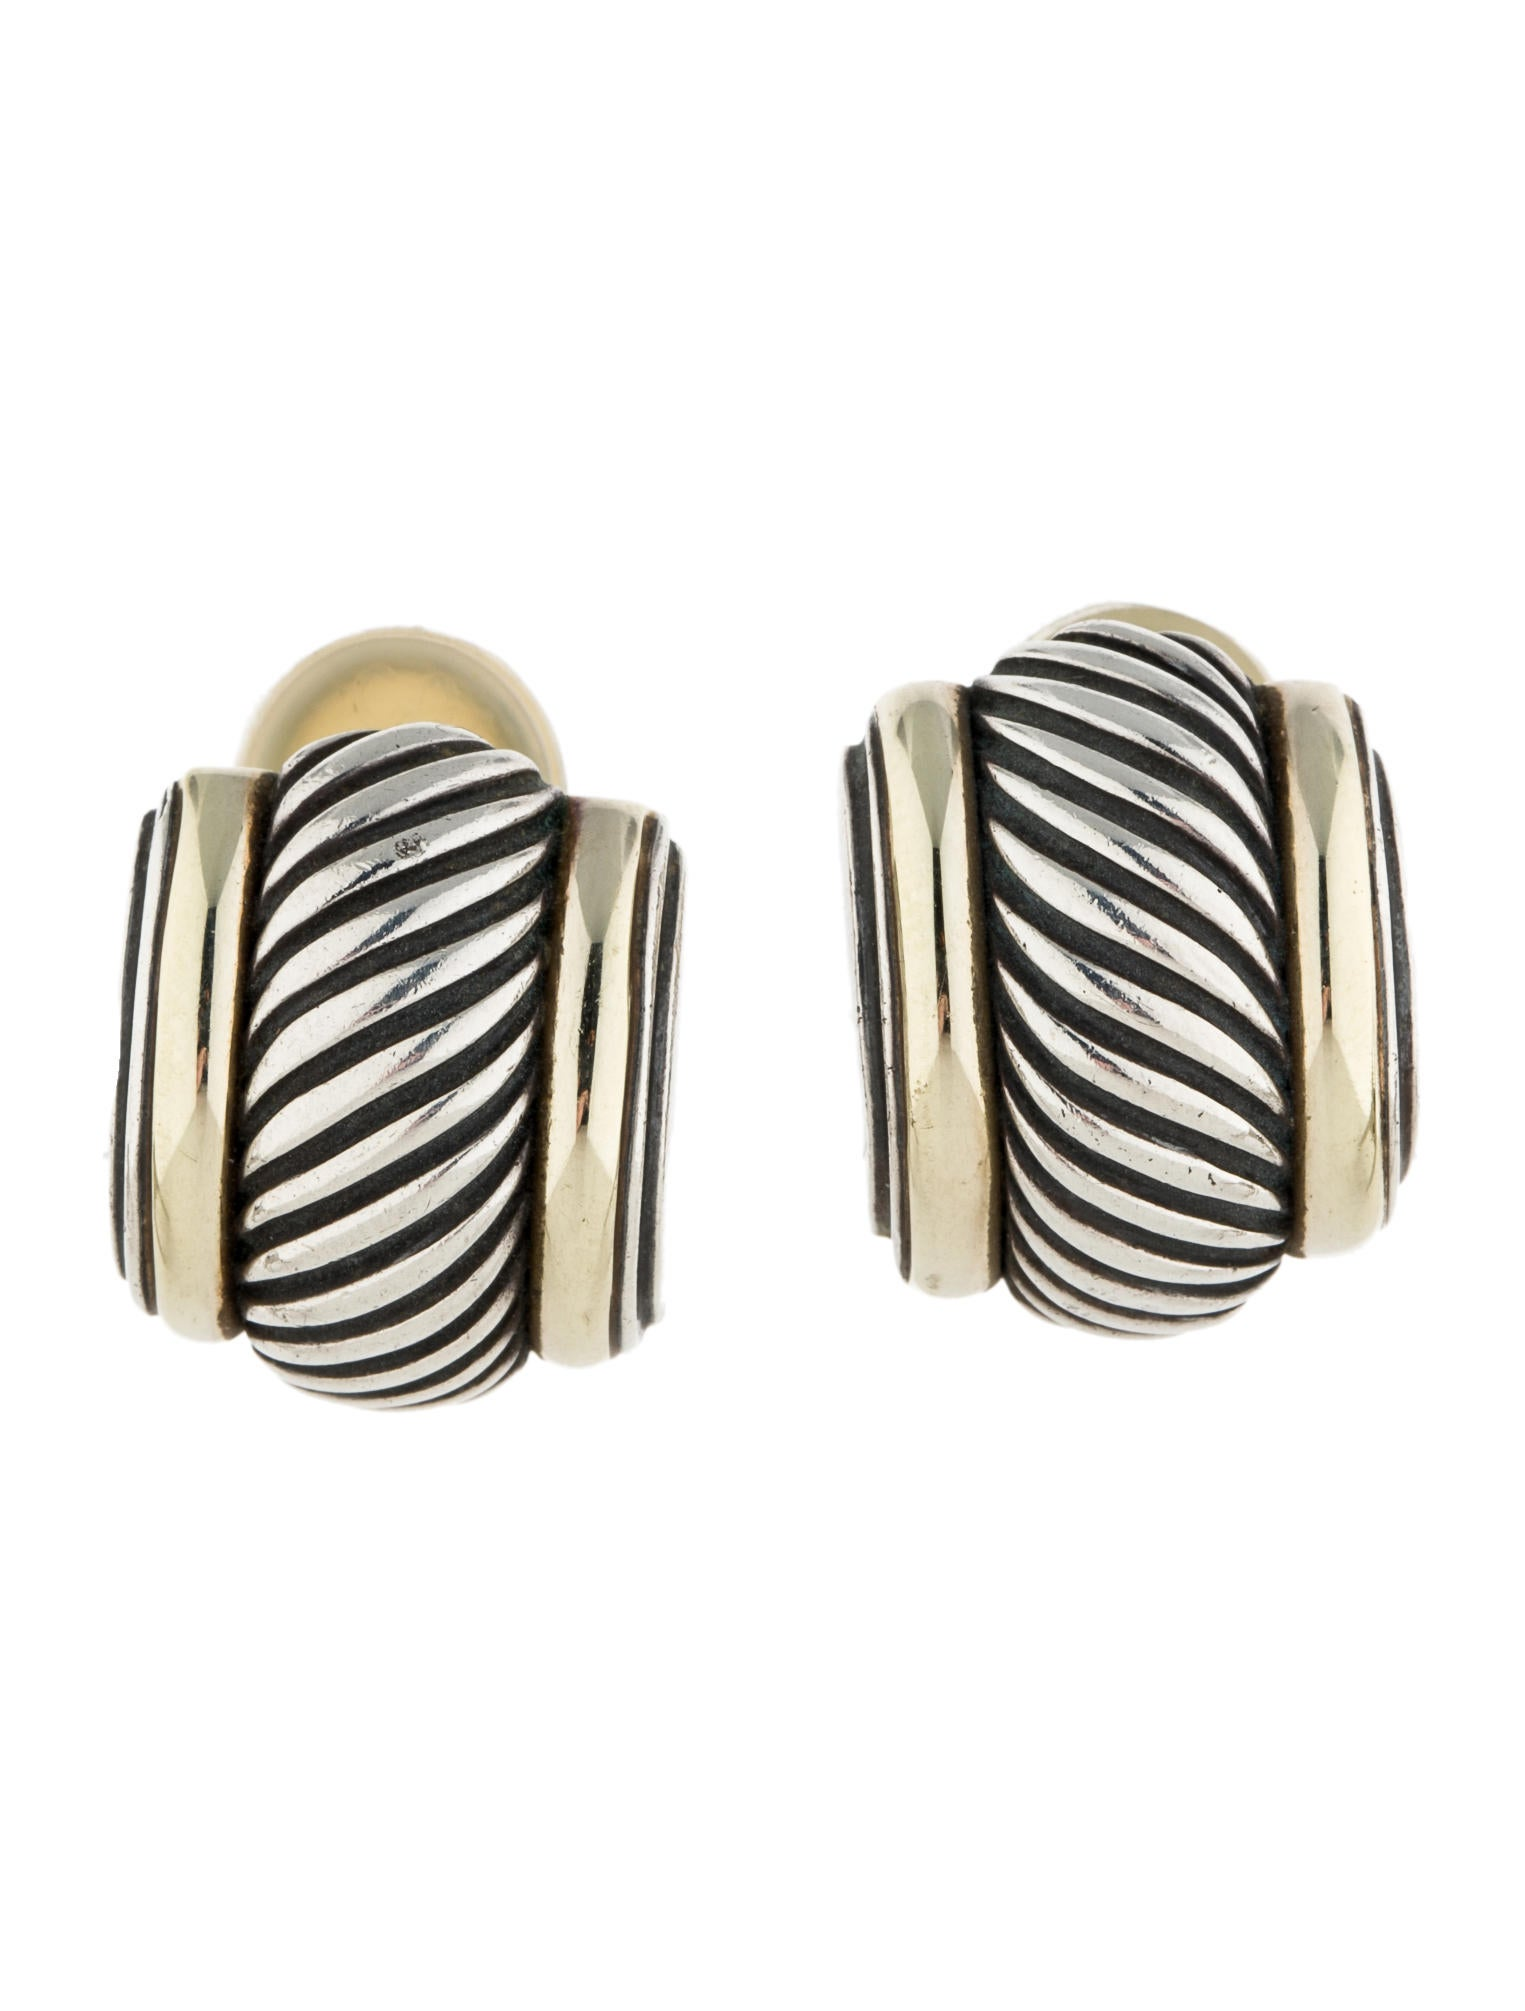 David Yurman Thoroughbred Earrings